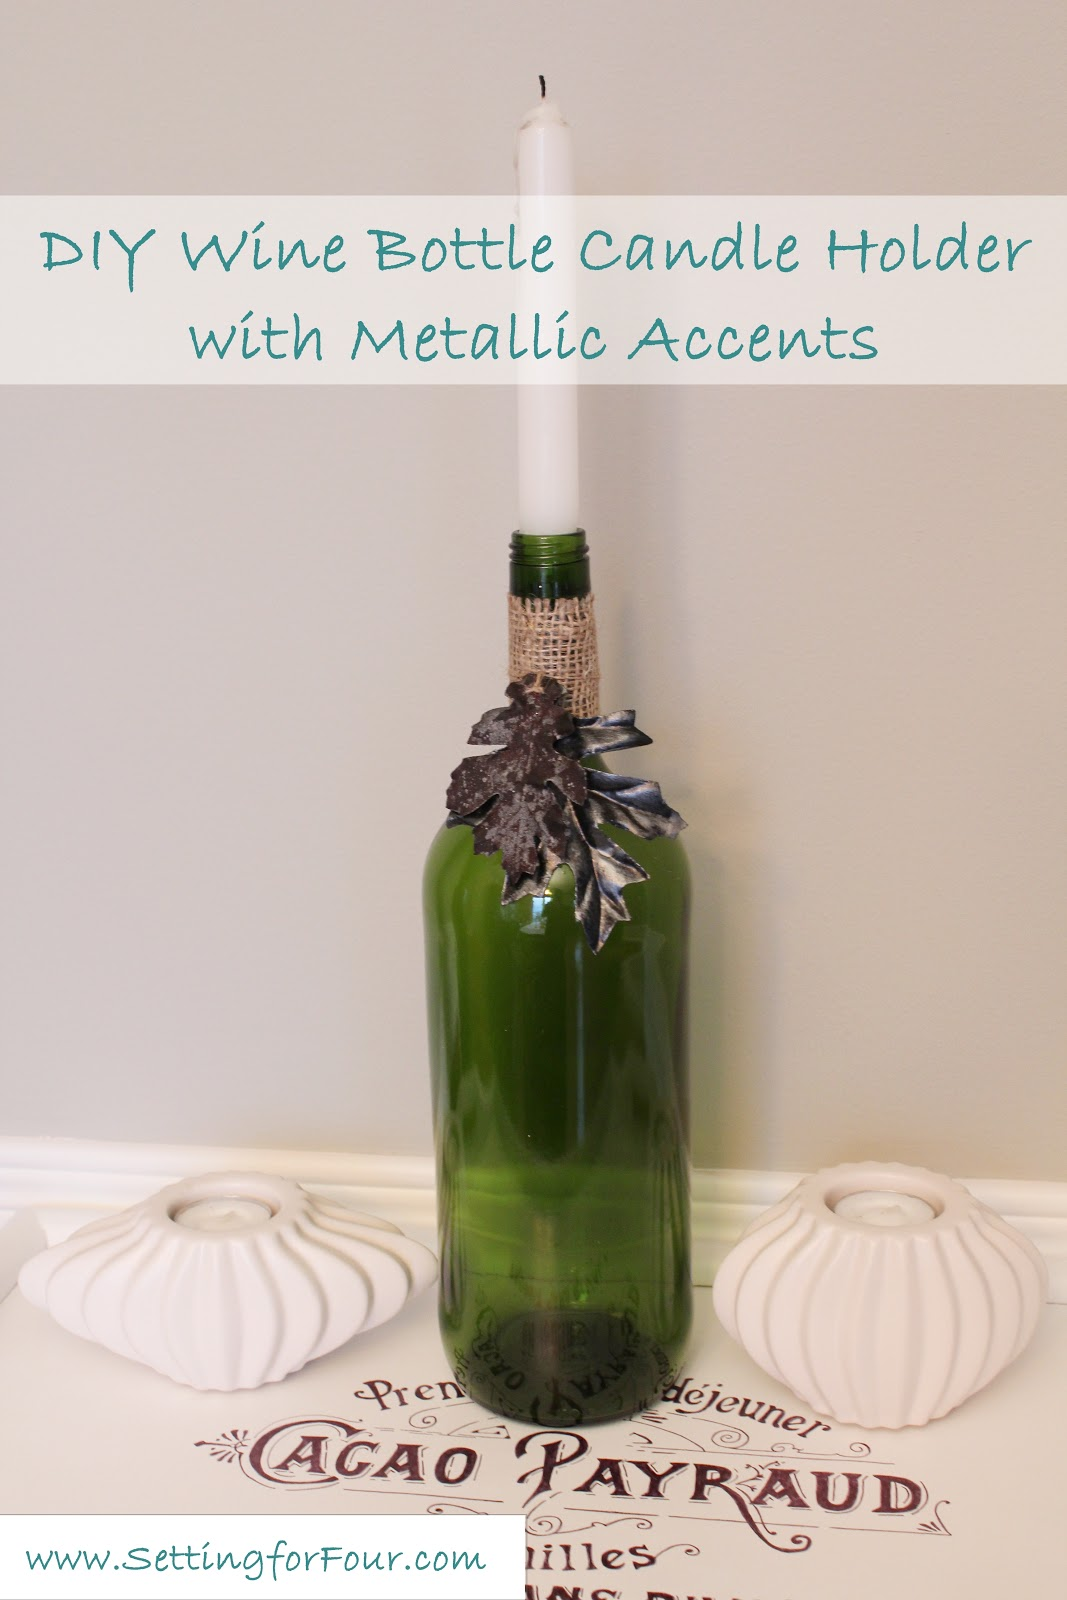 DIY Wine Bottle Candle Holder with Metallic Accents ...